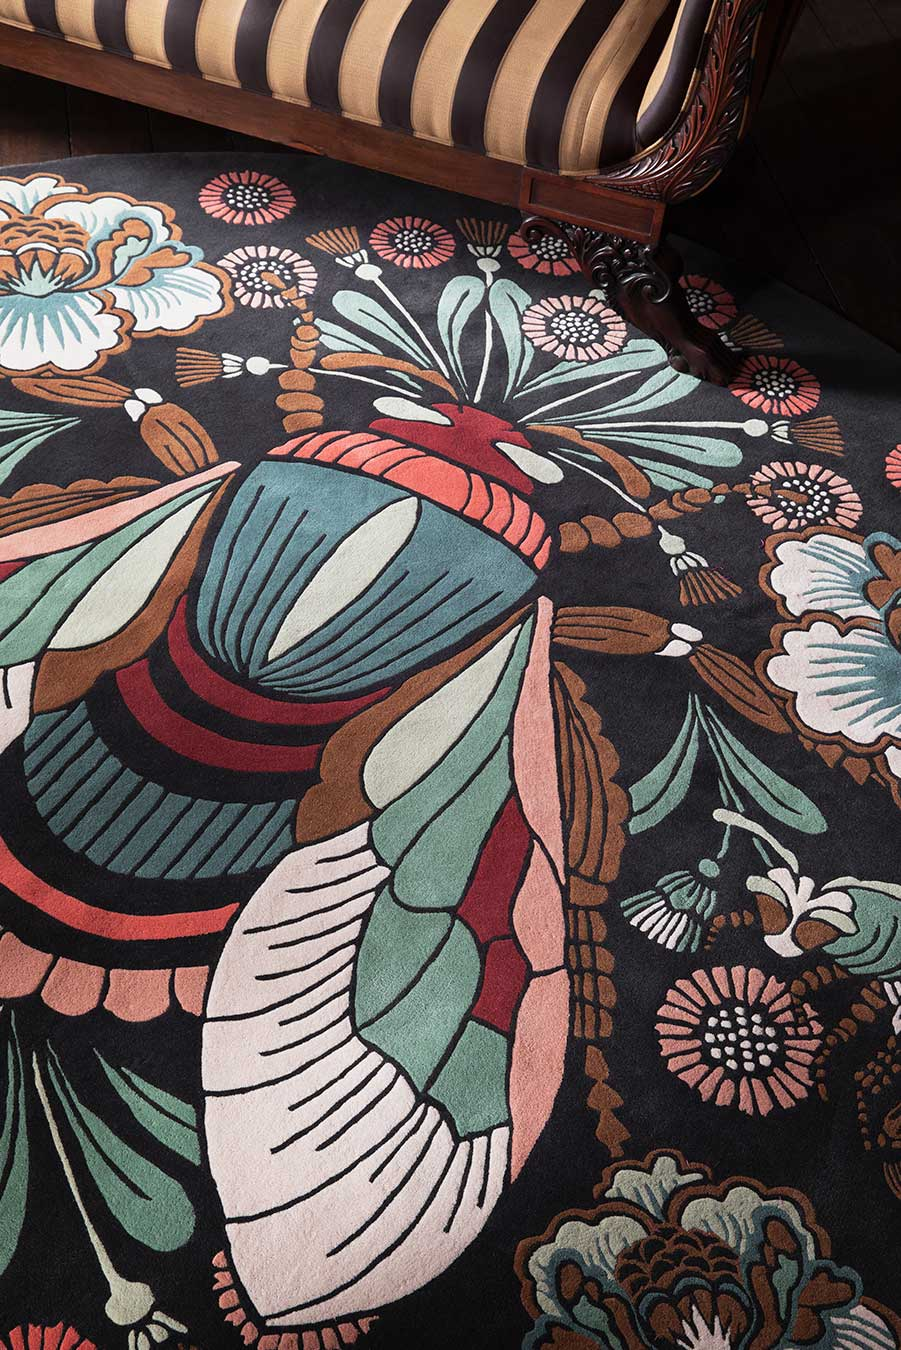 Detailed image of floral The Bees Knees rug by House of Heras